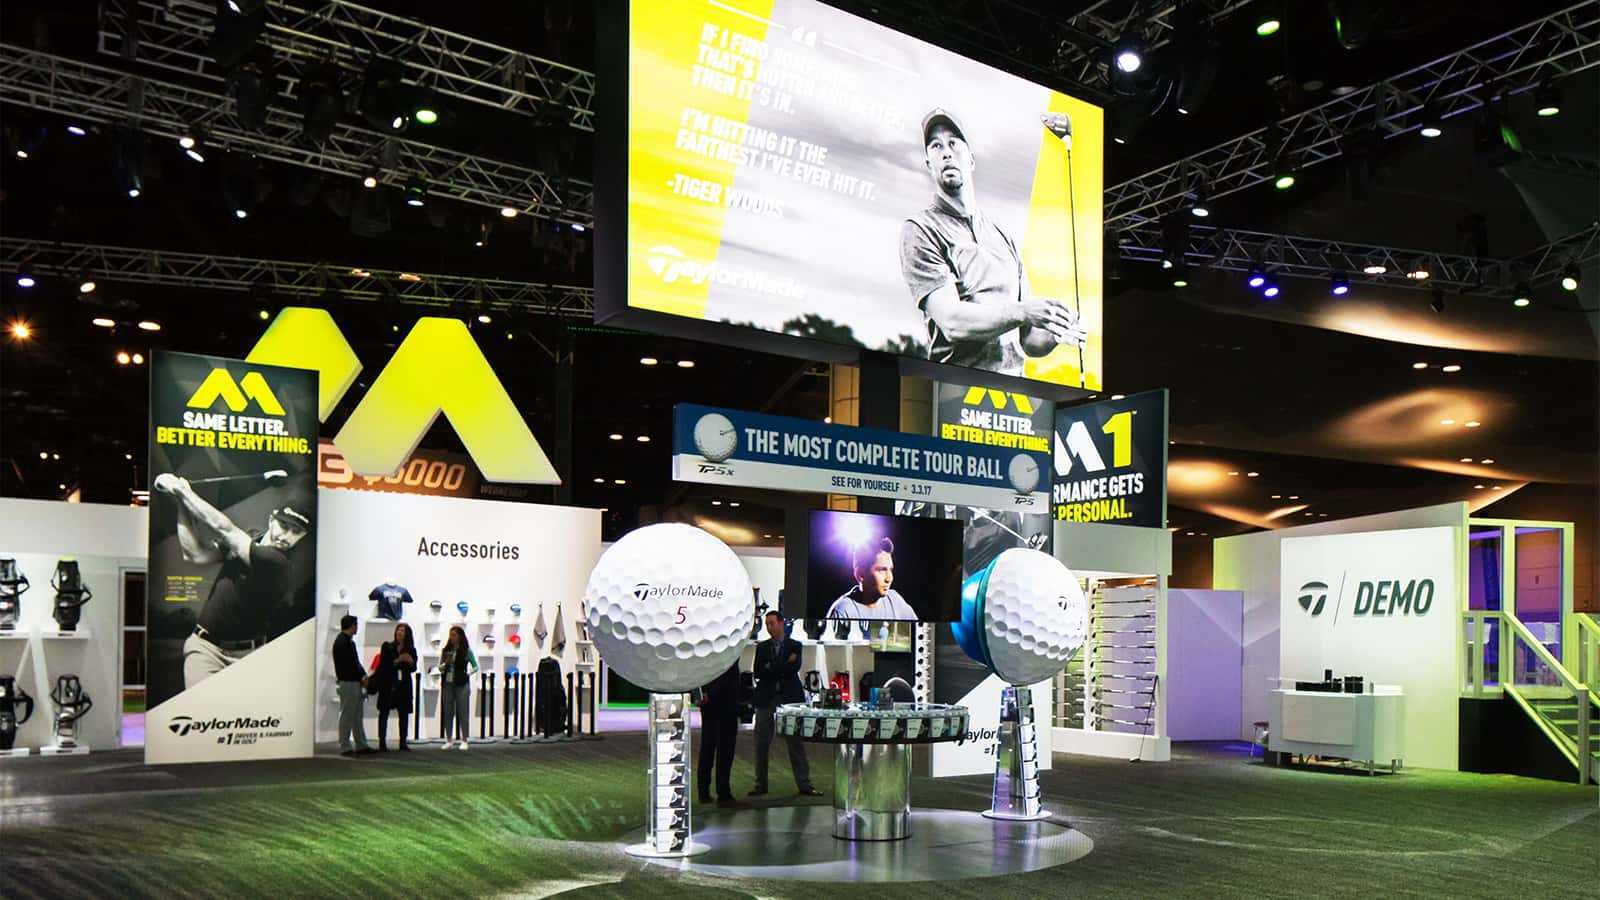 The TaylorMade golf ball display at the TaylorMade PGA Merchandise Show 2017 experience.